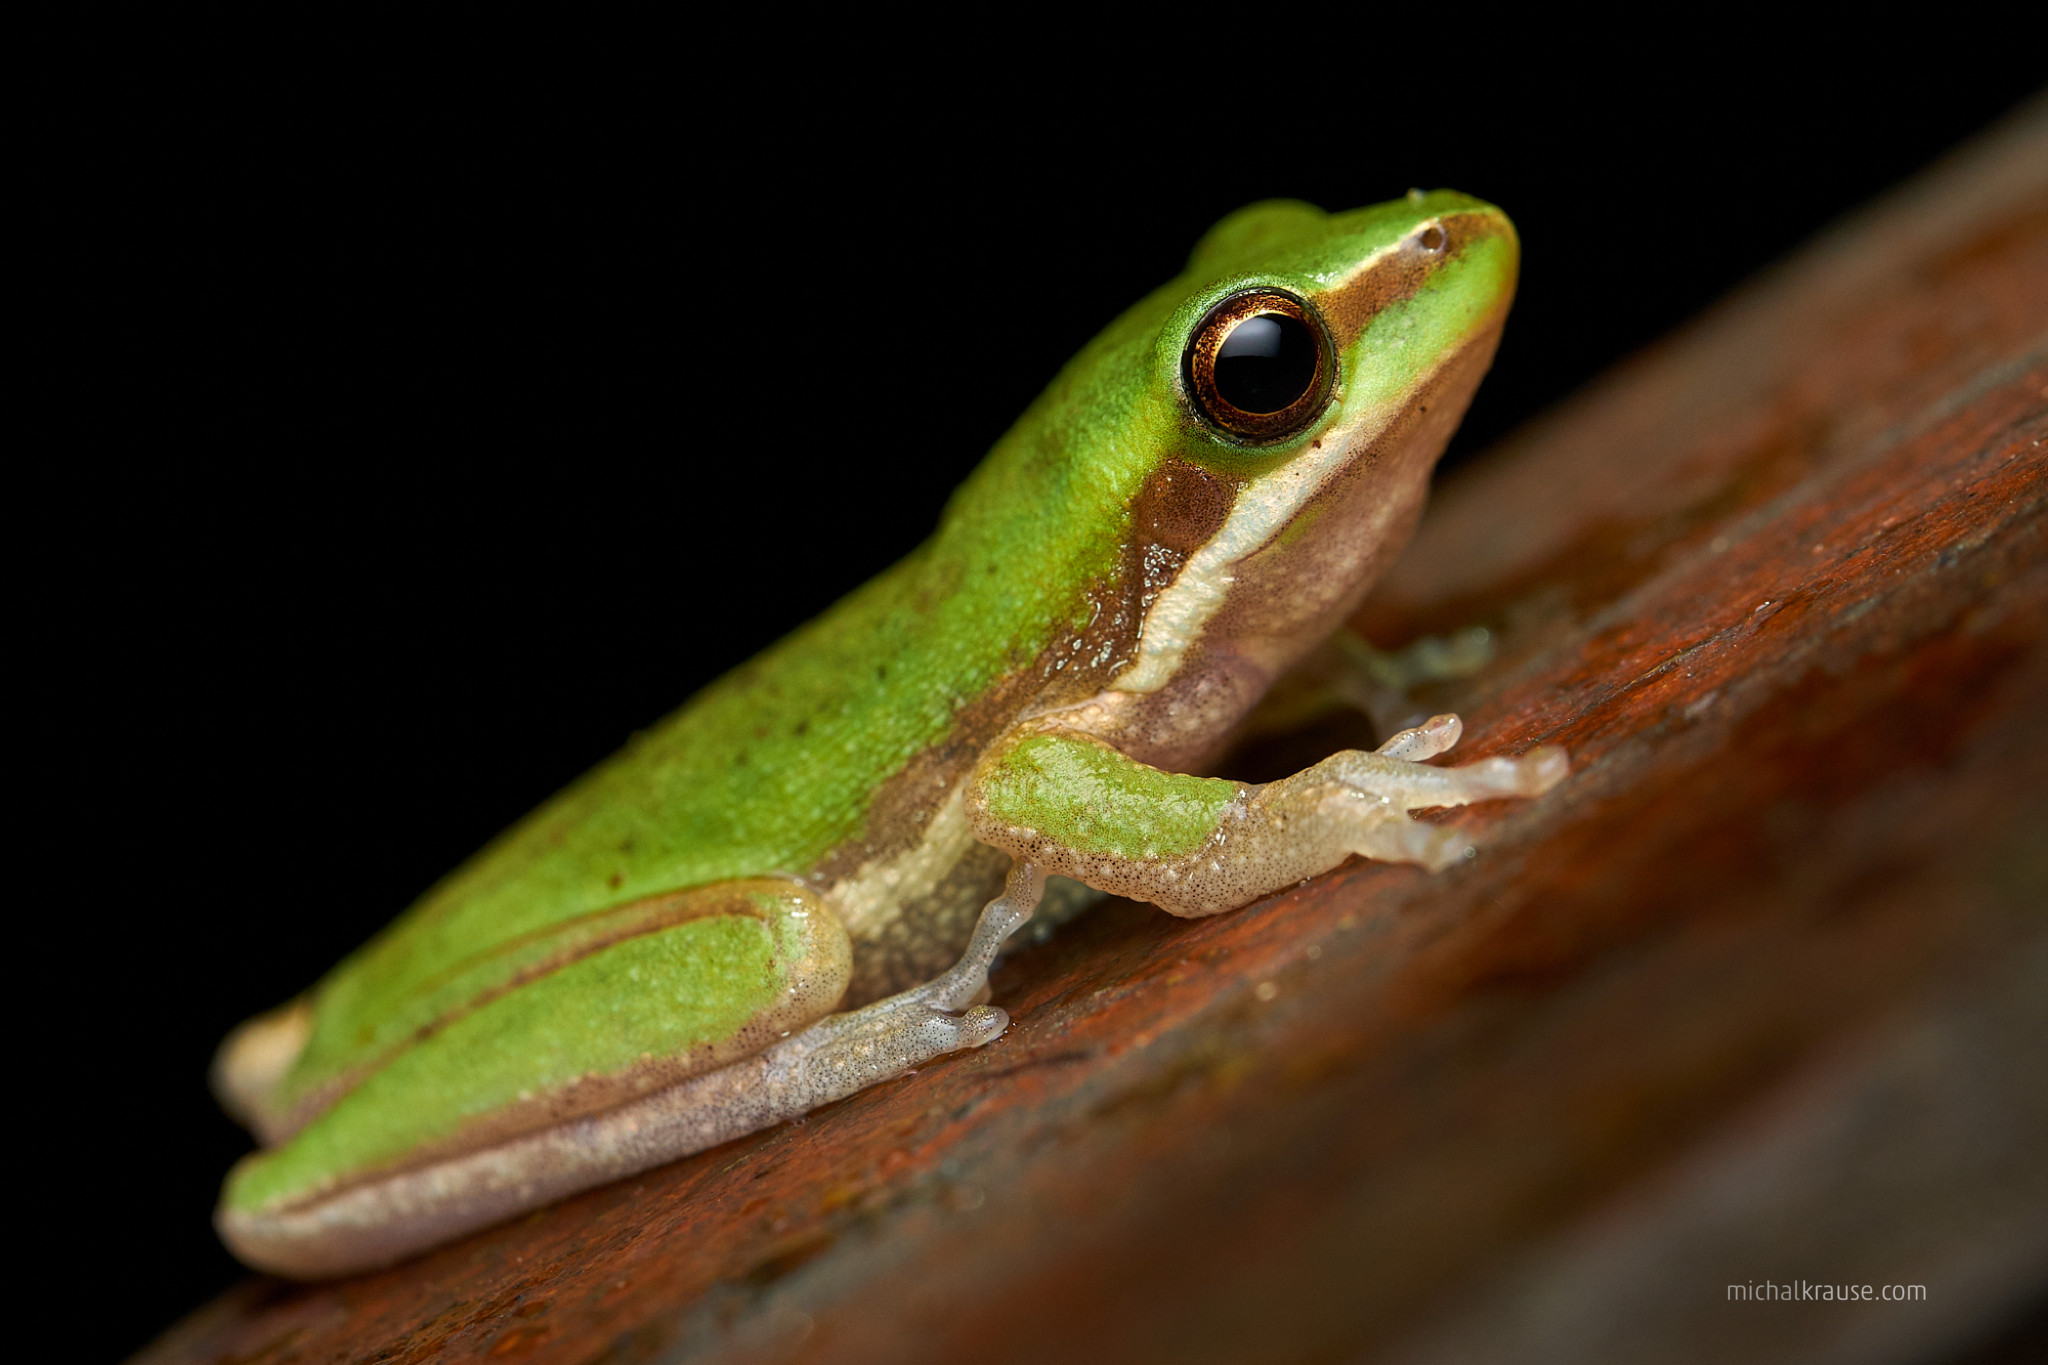 Northern Dwarf Tree Frog (Litoria bicolor)